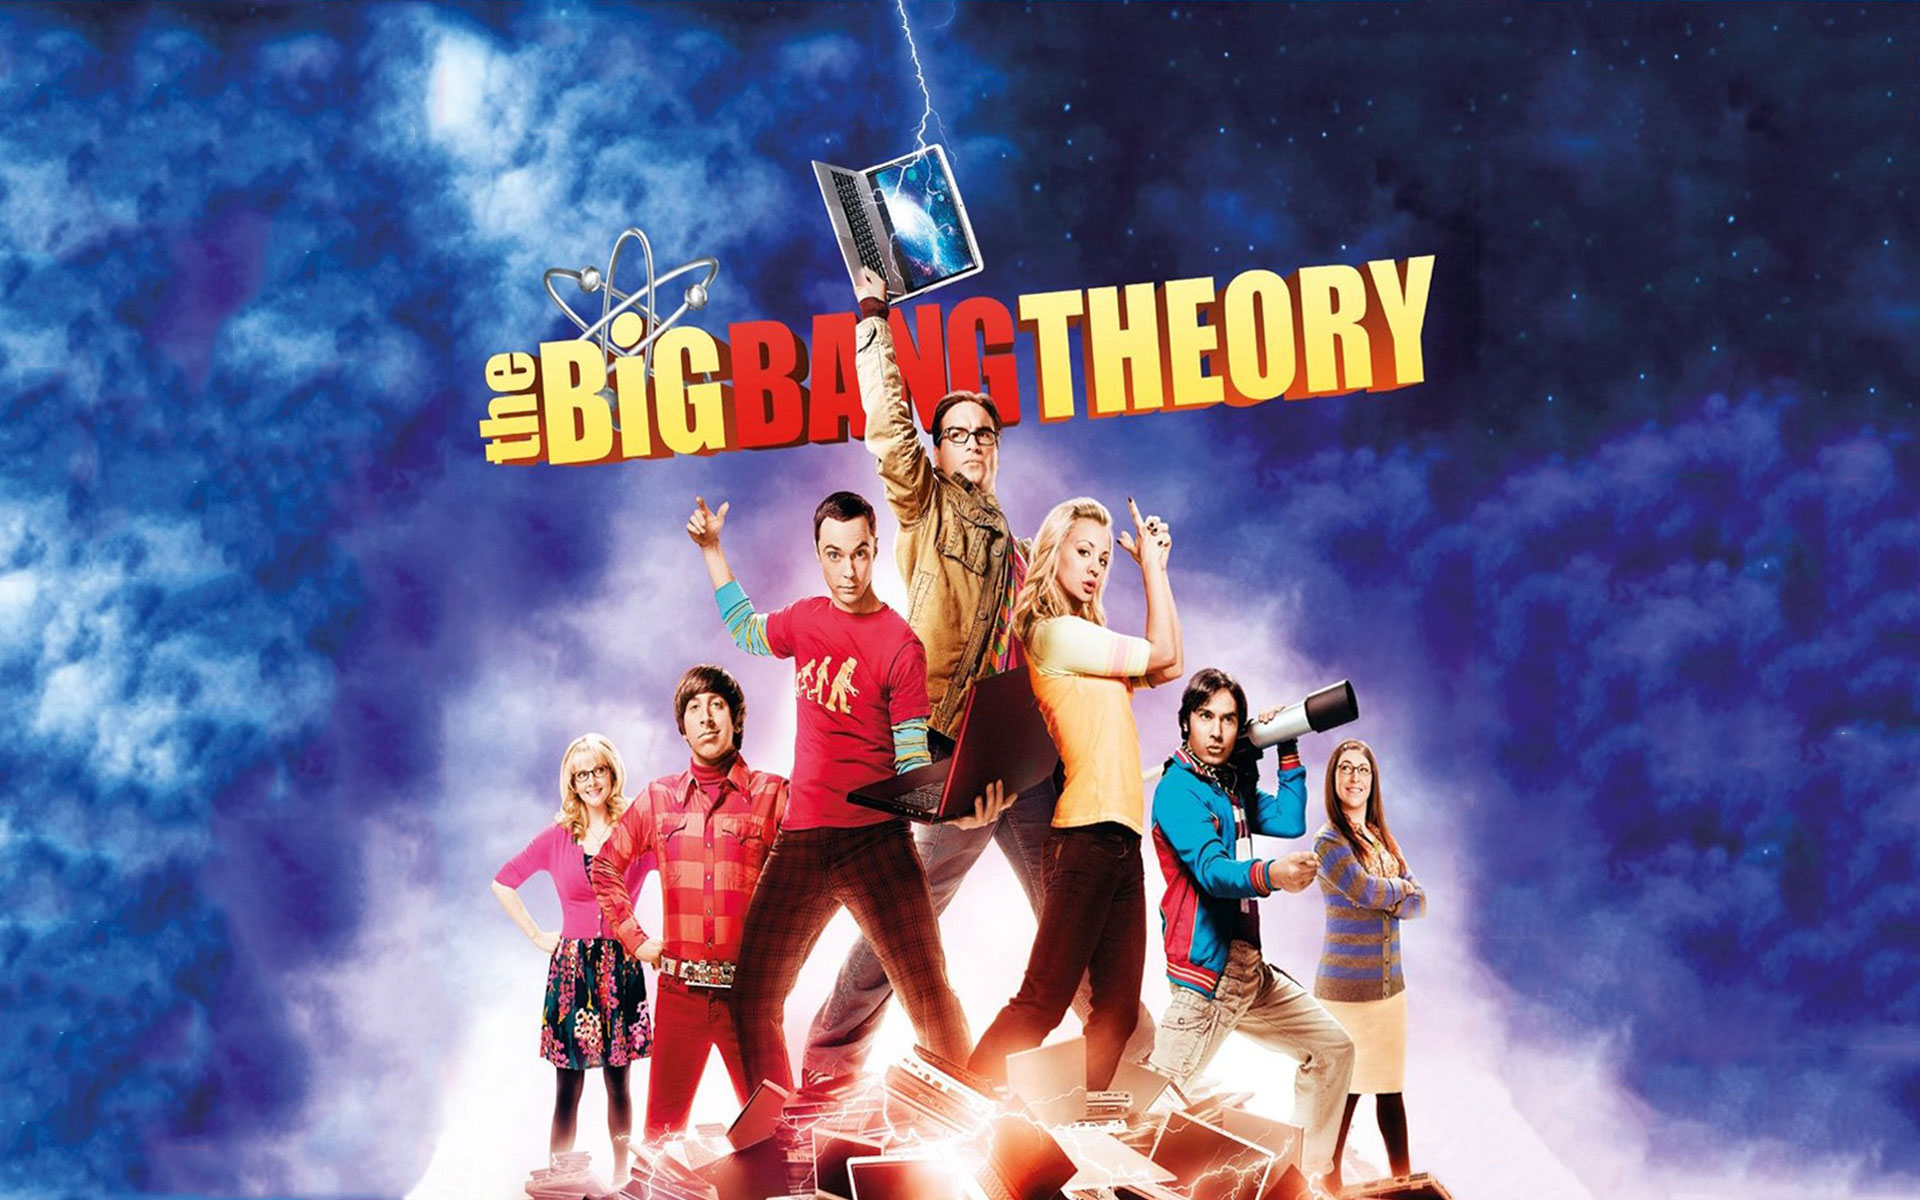 Most Inspiring Wallpaper Movie The Theory Everything - big-bang-theory-images_114829  Photograph_428798.jpg